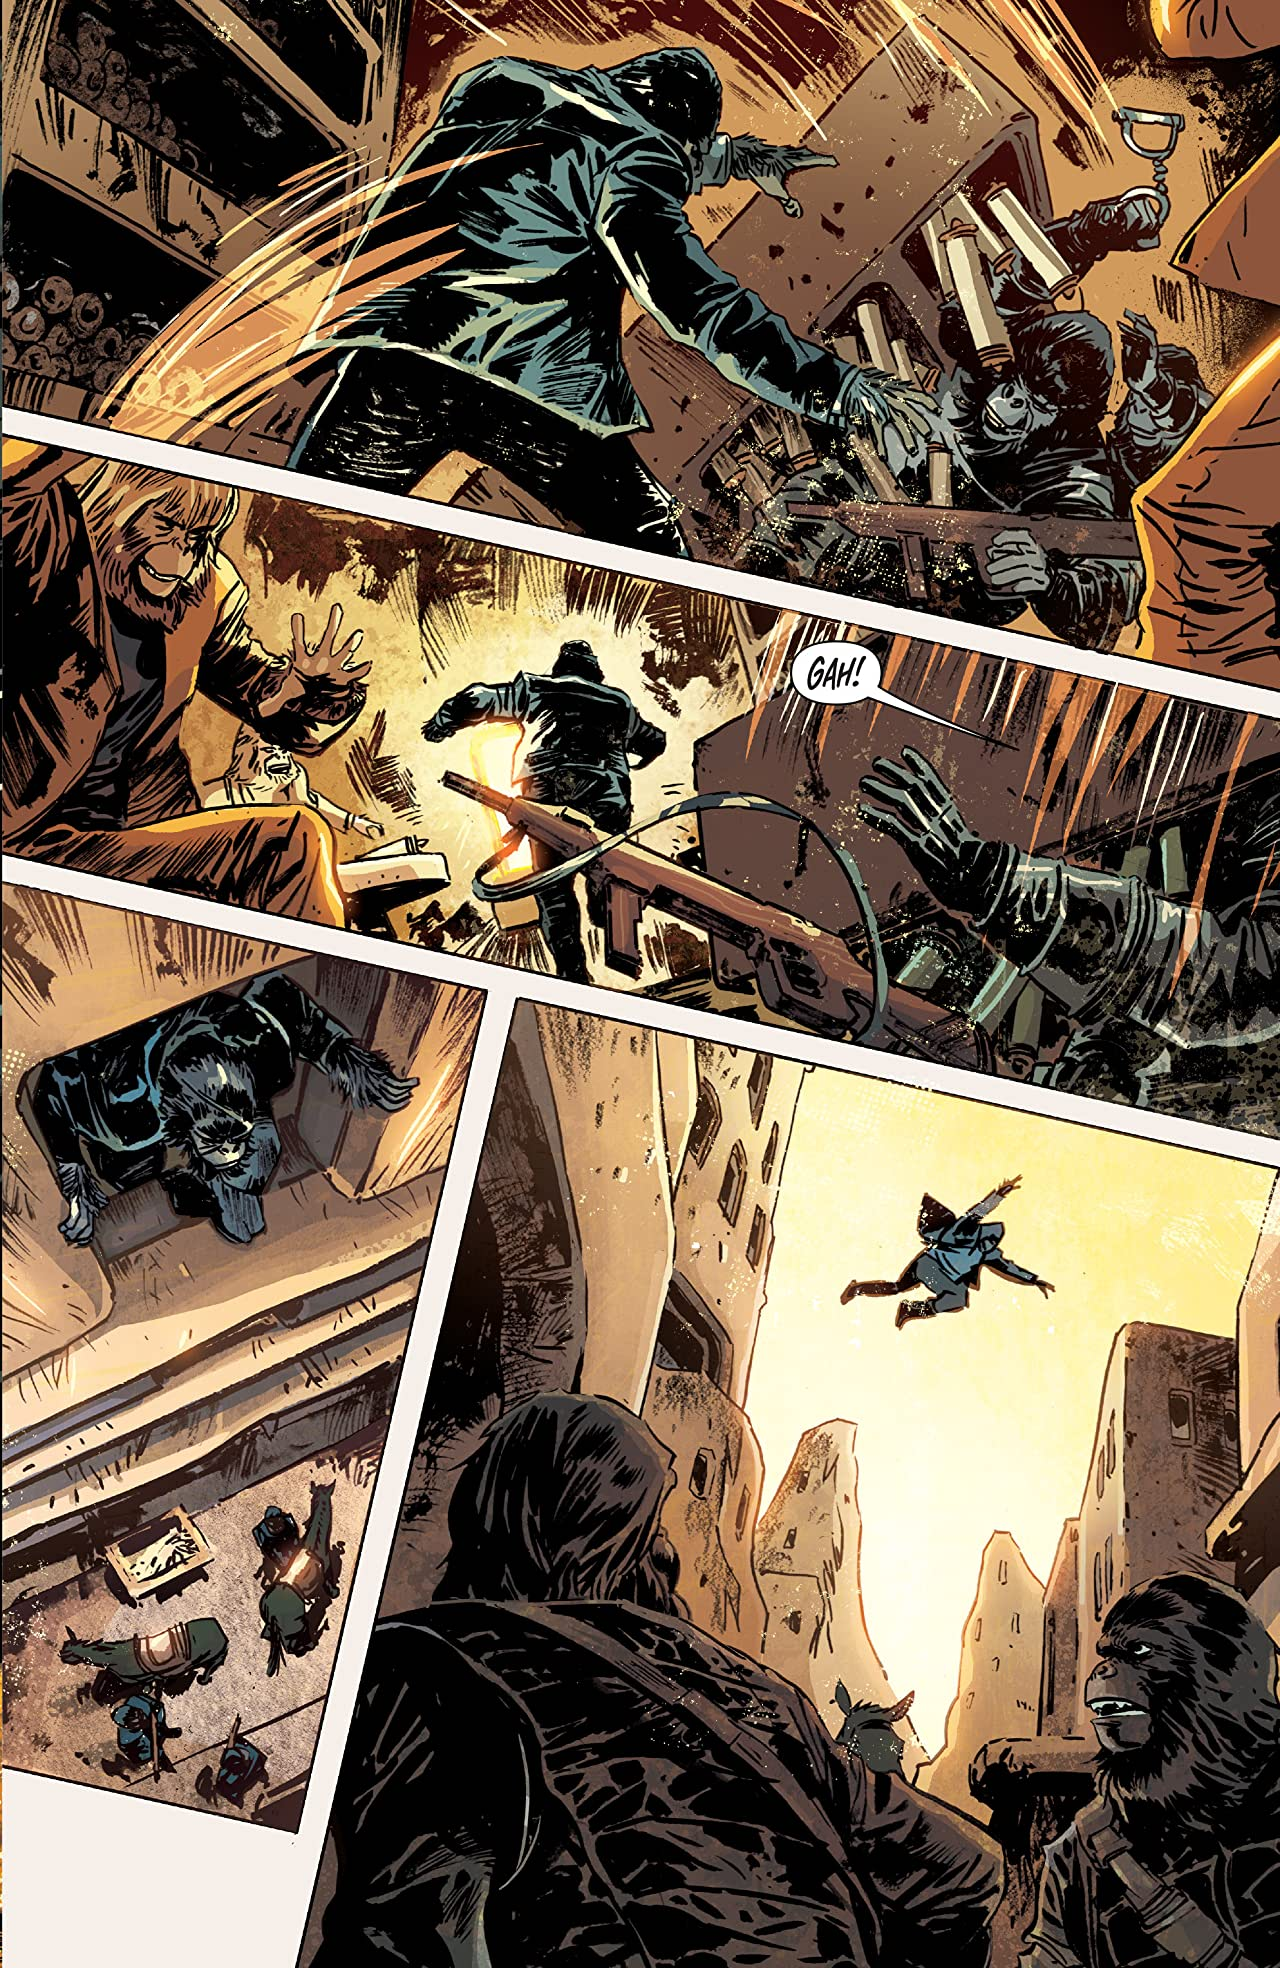 Betrayal of the Planet of the Apes #2